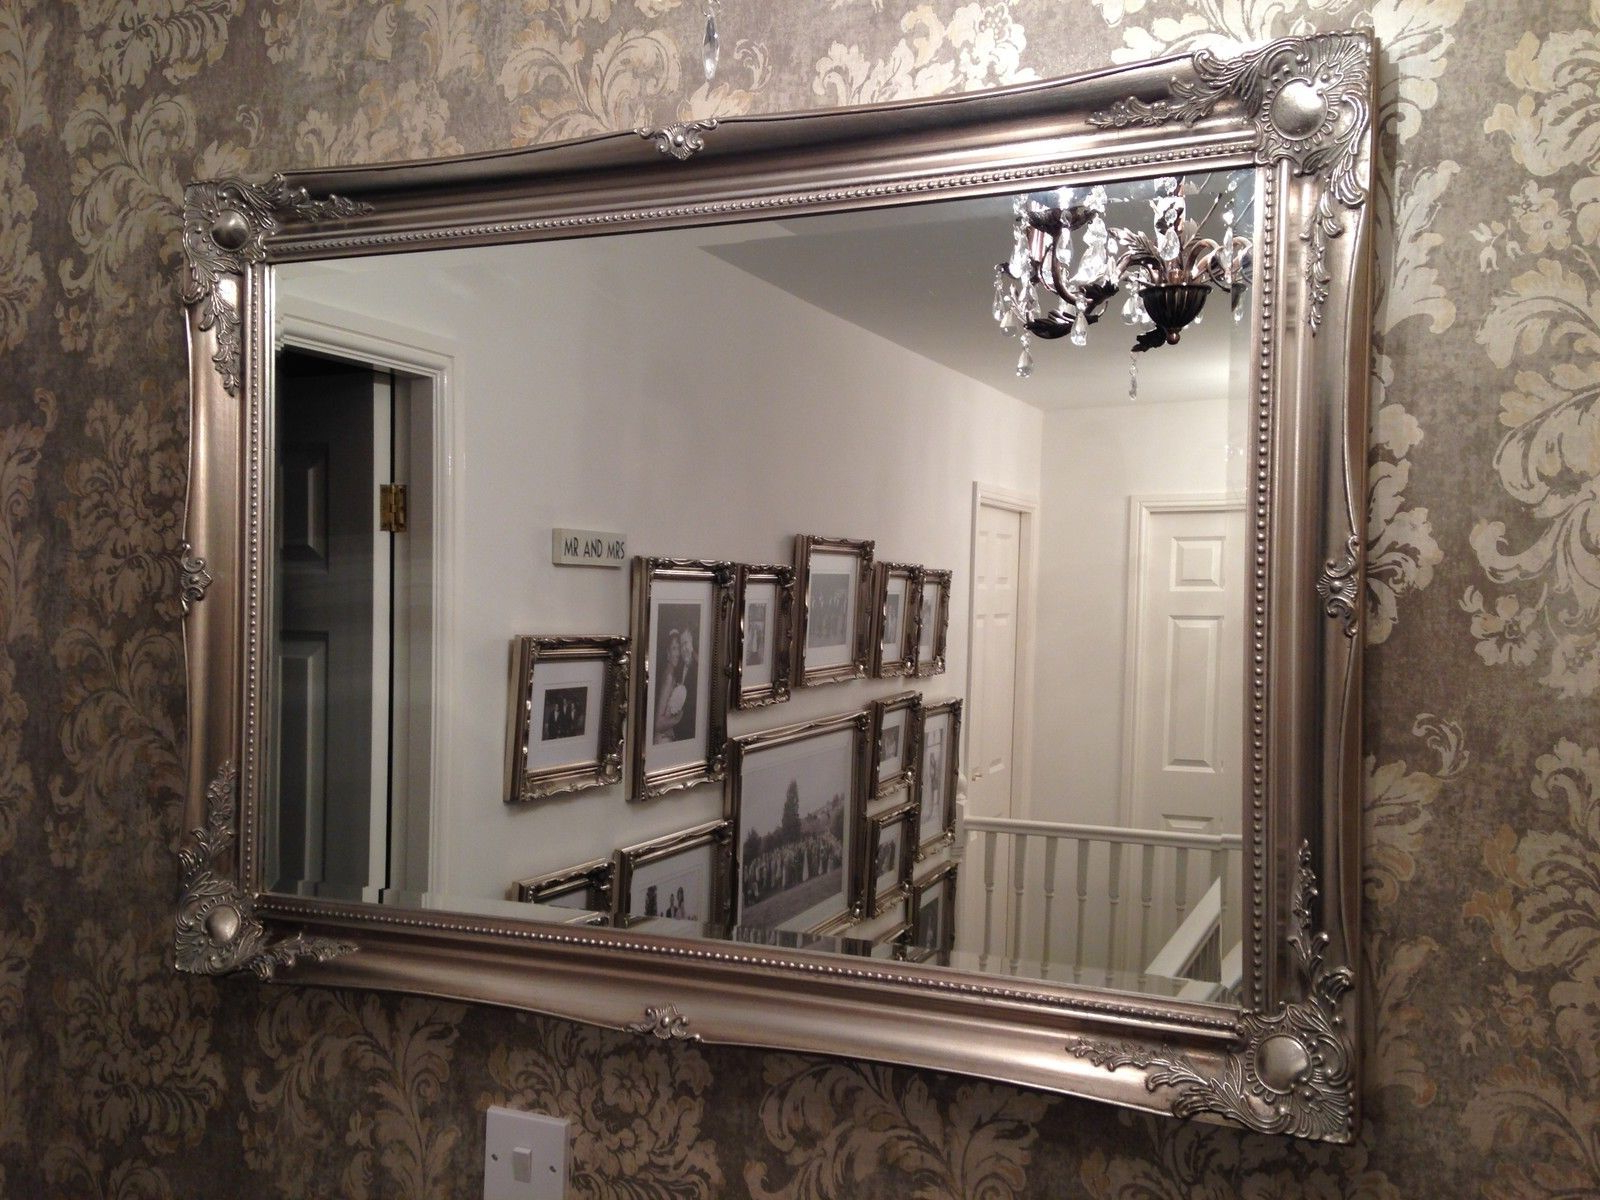 Recent Salon Wall Mirrors Regarding Large Hair Dresser Salon Fabulous Mirrors – Full Colour And Size Range (View 11 of 20)